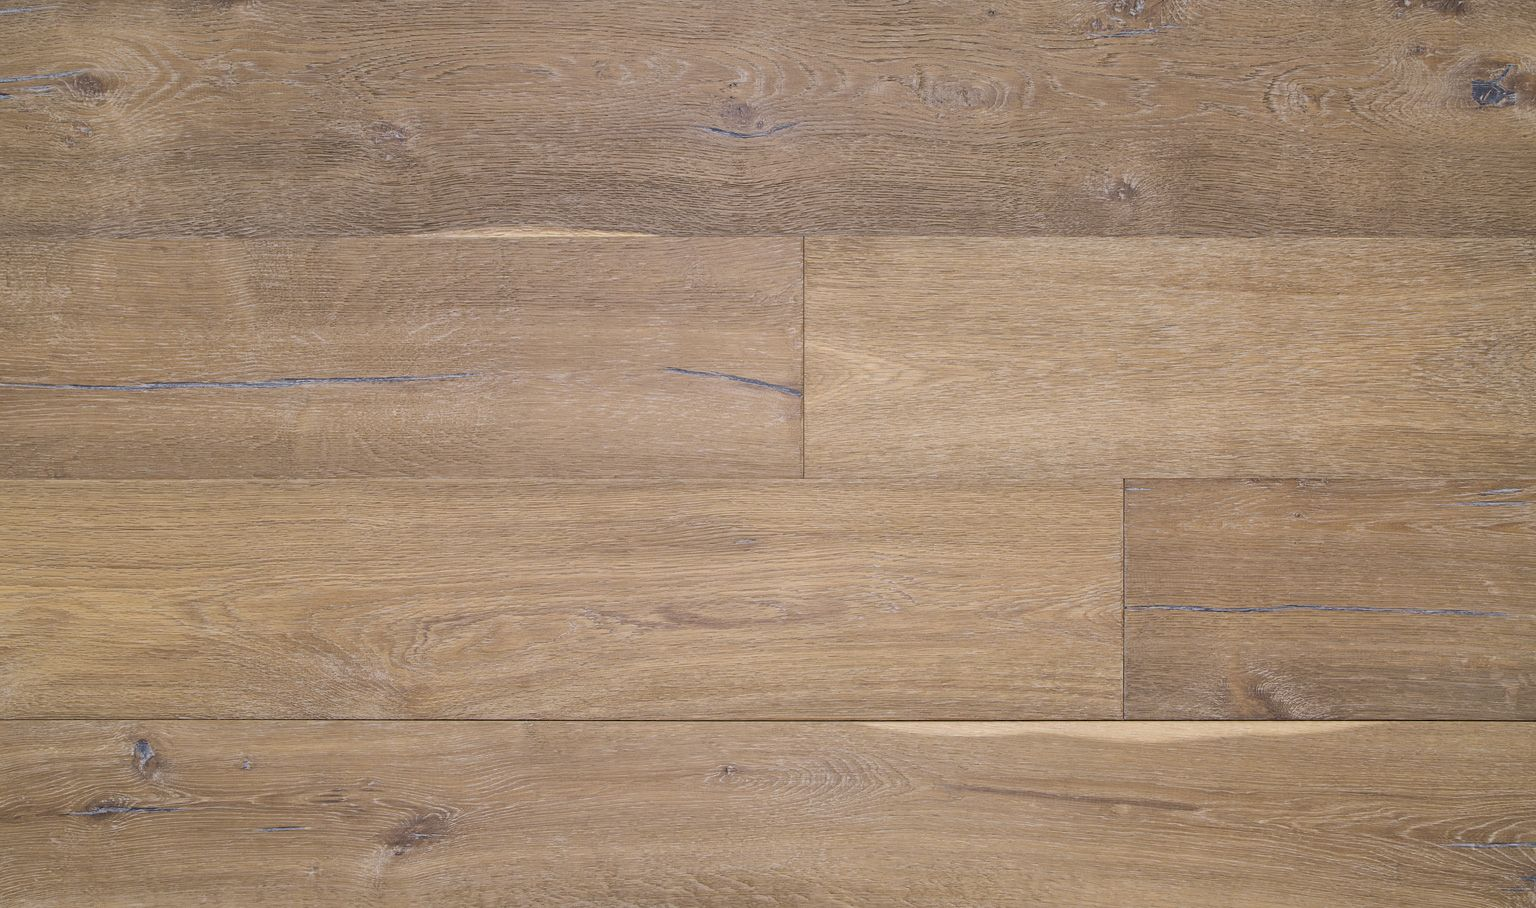 Vivaldi Oak Engineered Light Brown Hardwood Floors Elegant Wood Flooring Matte F Wood Floors Wide Plank Engineered Wood Floors Engineered Hardwood Flooring